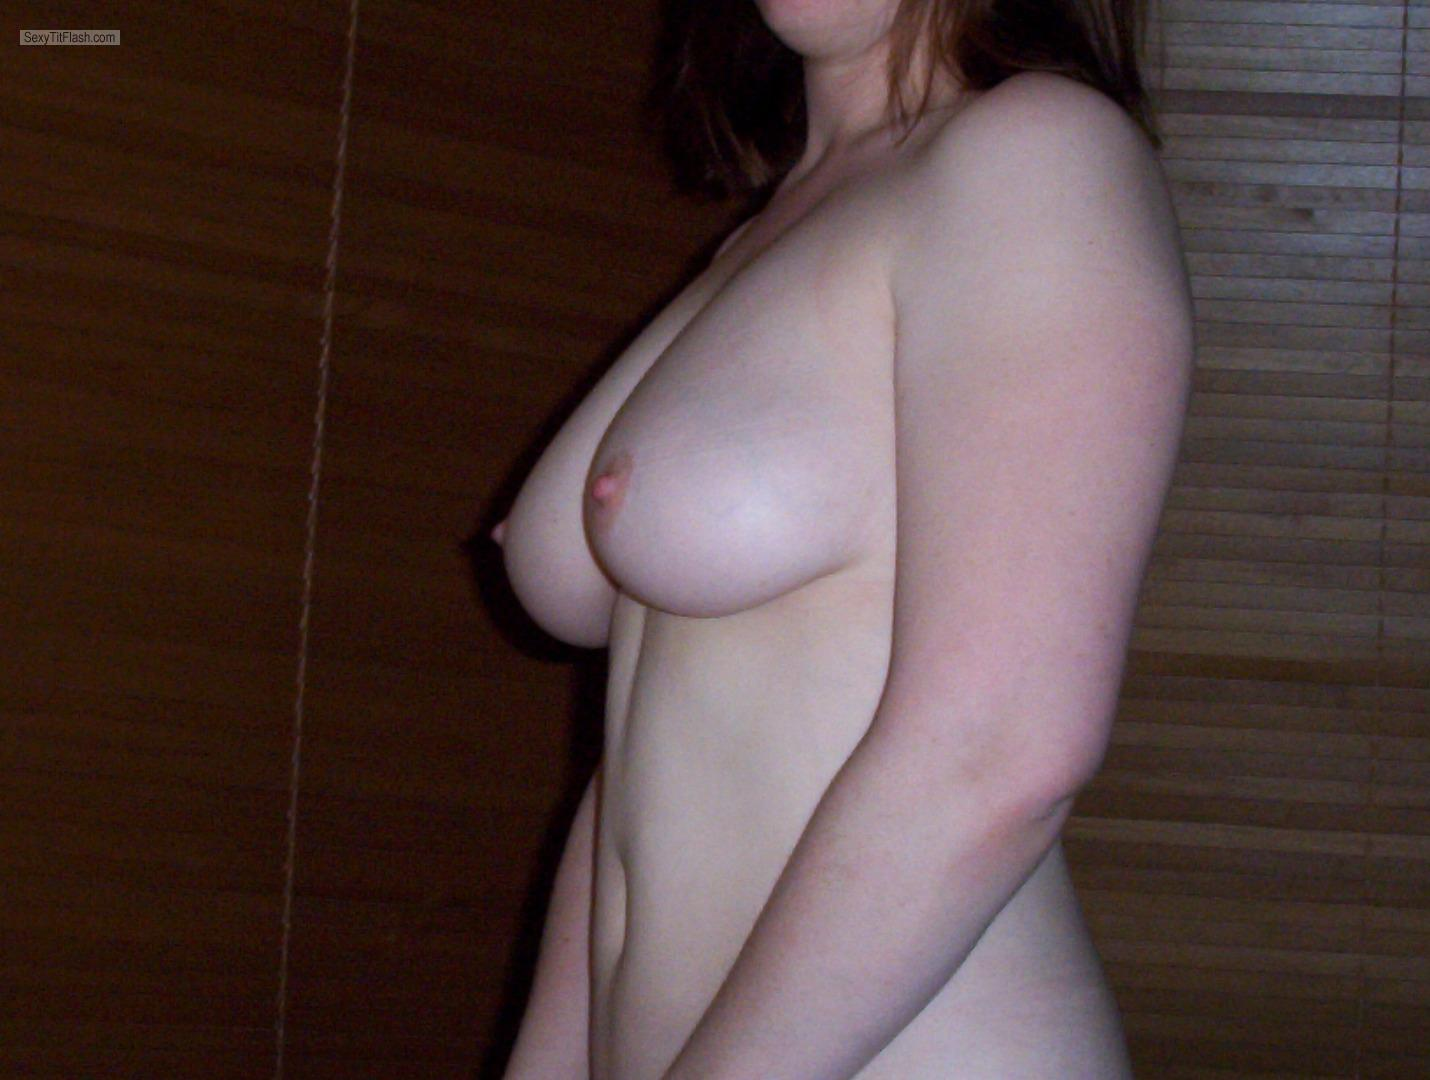 Tit Flash: My Medium Tits - Jakey from United Kingdom